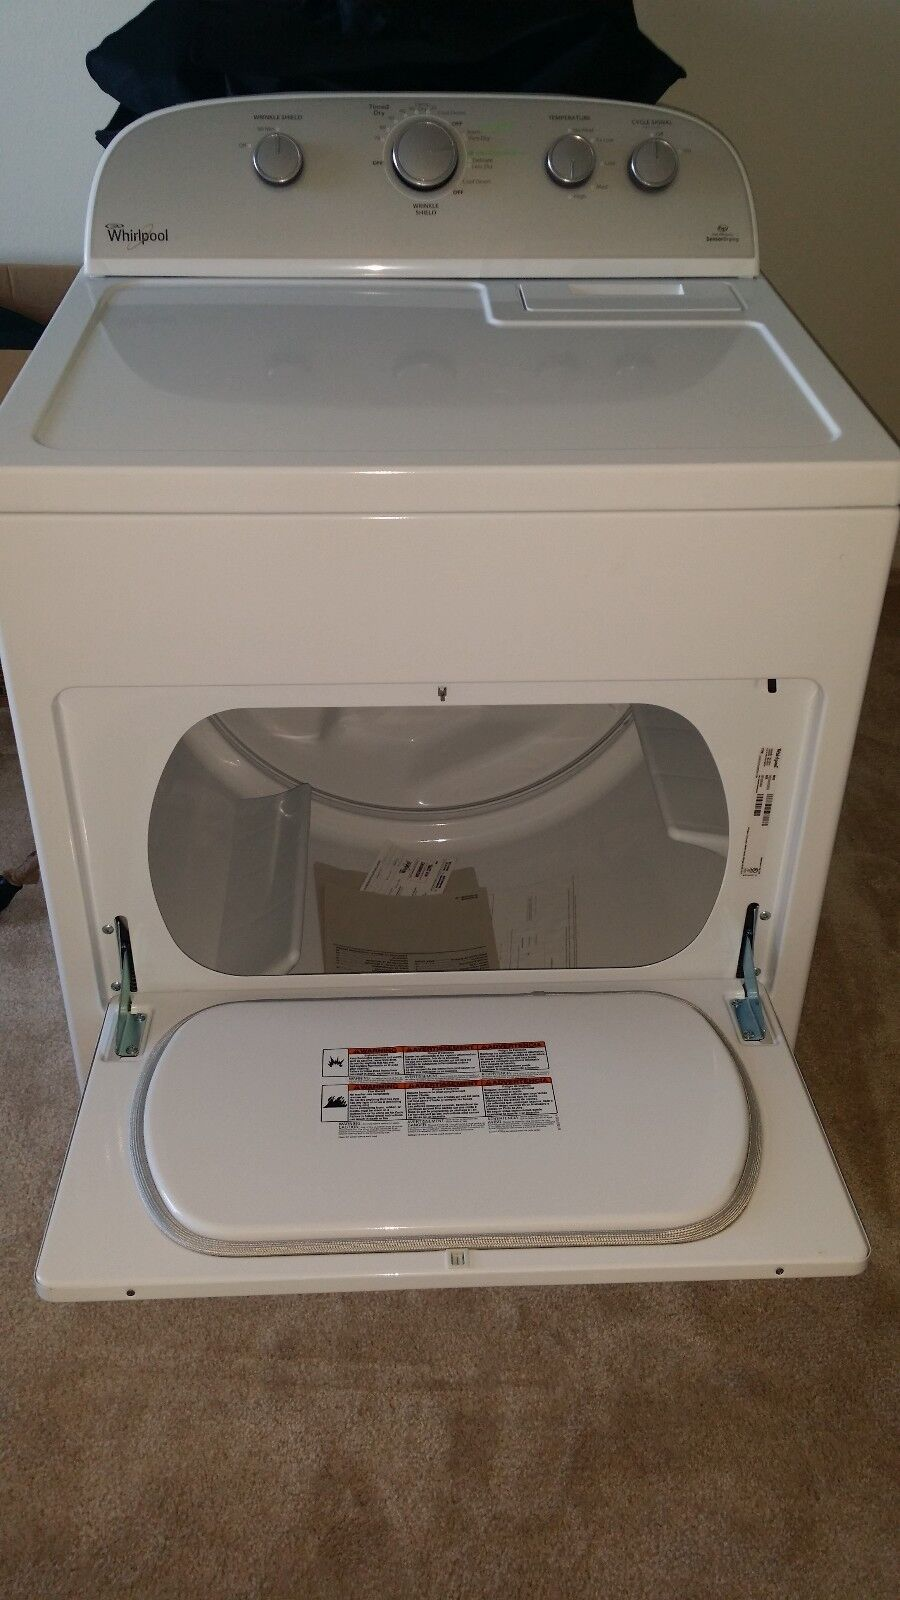 Whirlpool Cabrio 7.0 Cu. Ft. 13-Cycle Electric Dryer: Ensure